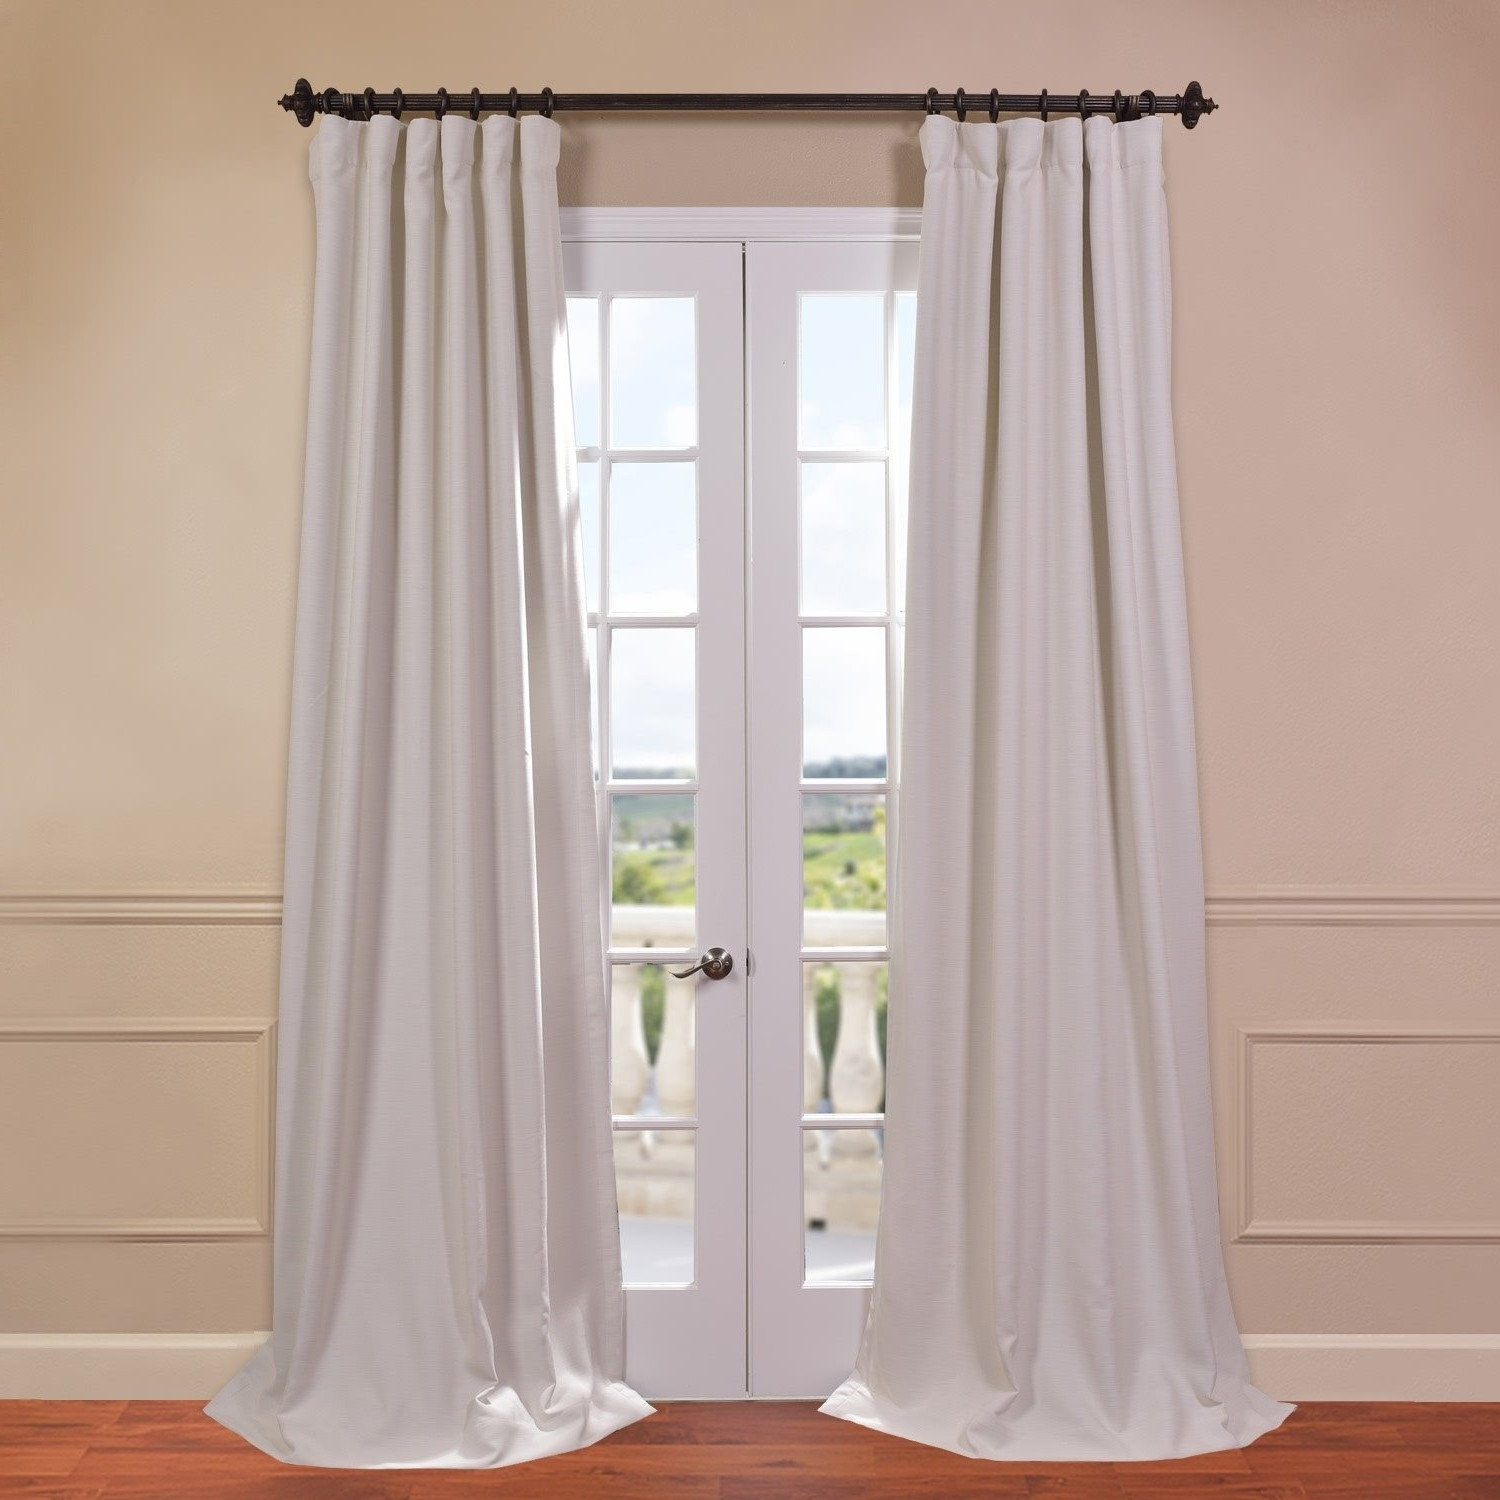 Lofty Inspiration Blackout Curtains 108 Inches Blackout Curtains With Regard To Long Drop Curtains (View 9 of 15)